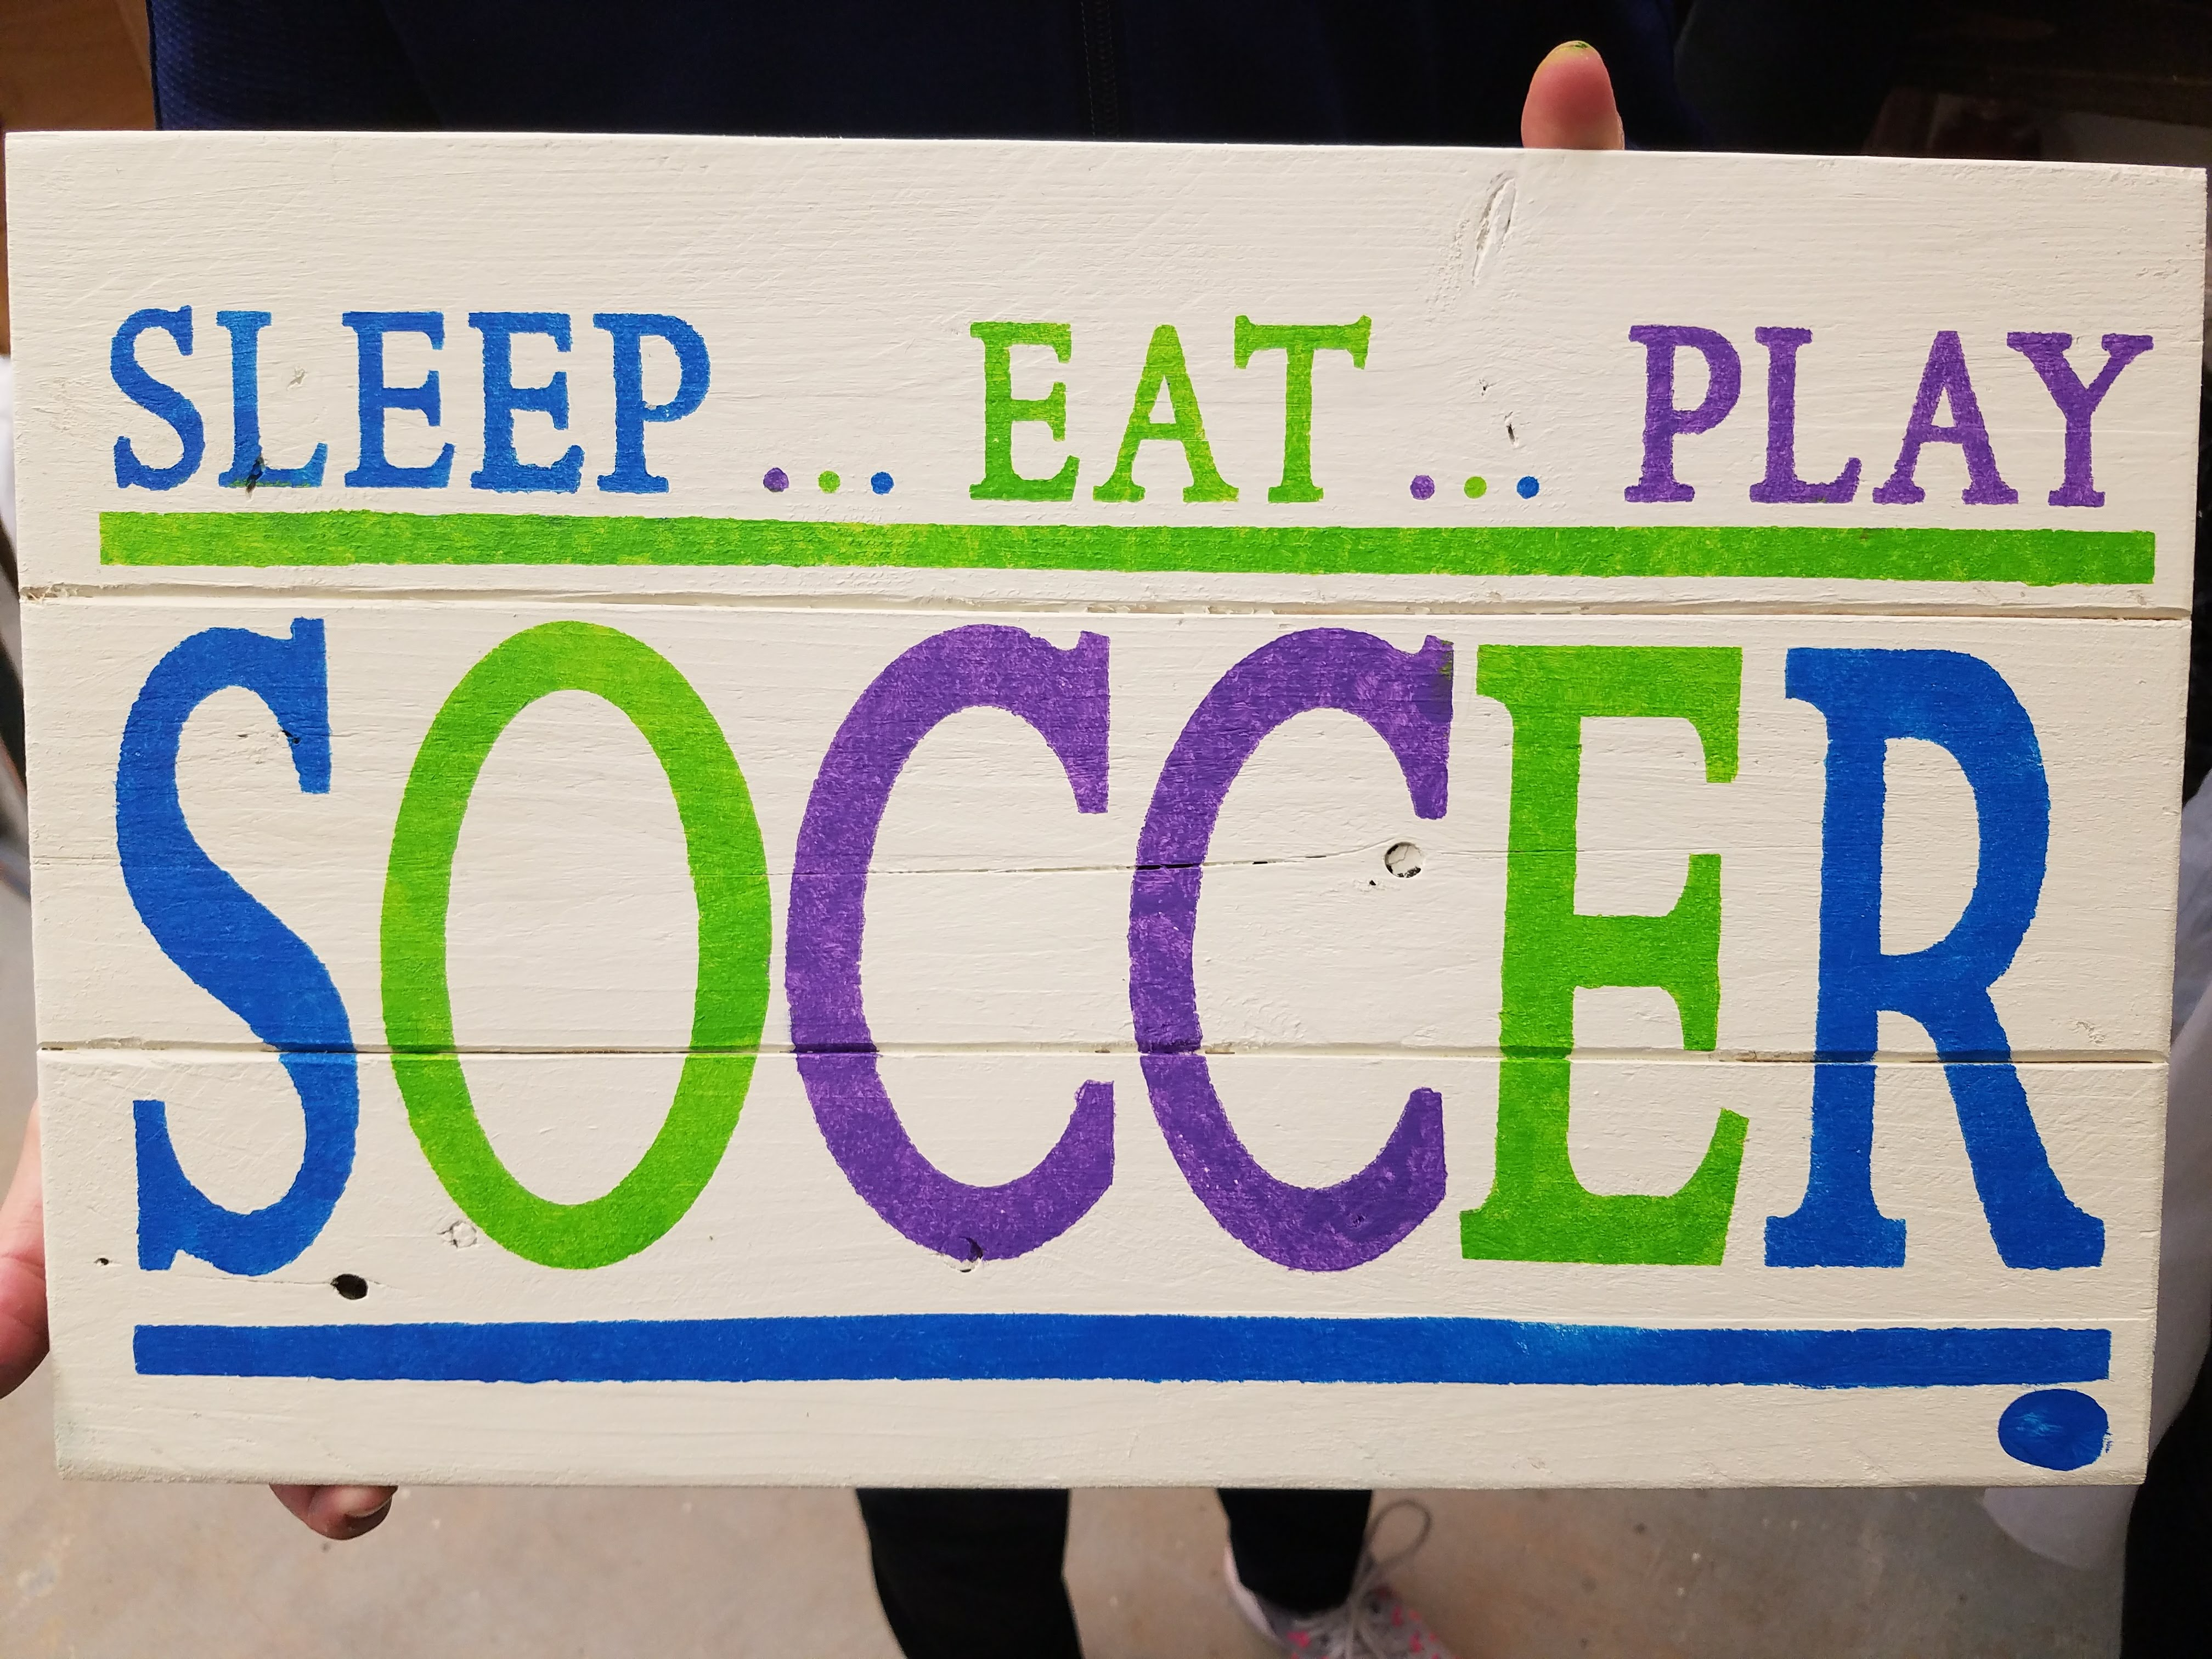 Sleep, Eat, Play - Soccer